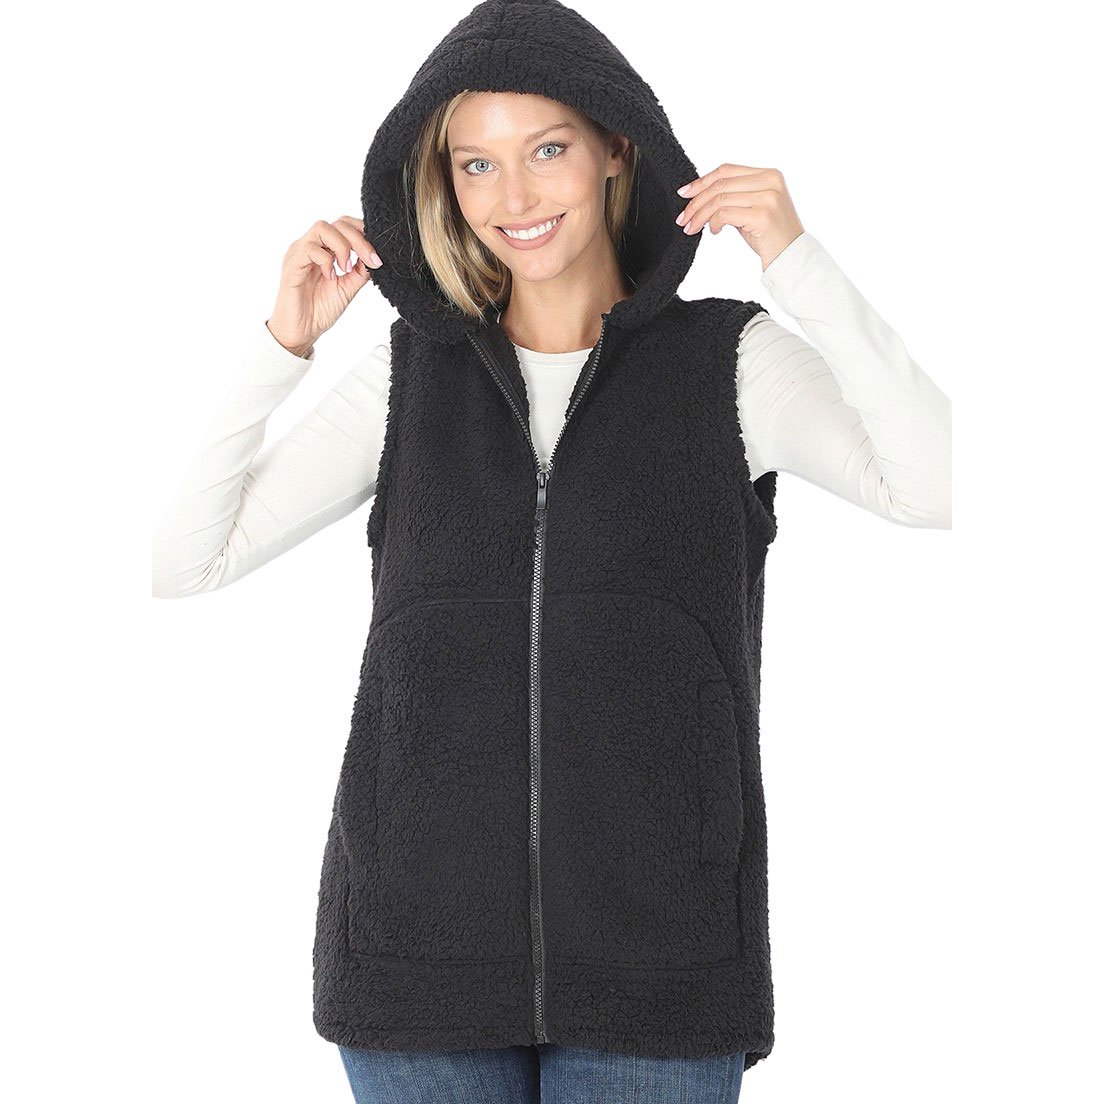 Vest - Sherpa Hi-Low Hooded Vest with Pockets 2865 - Black Vest Sherpa High-Low Hooded Vest with Pockets 2865